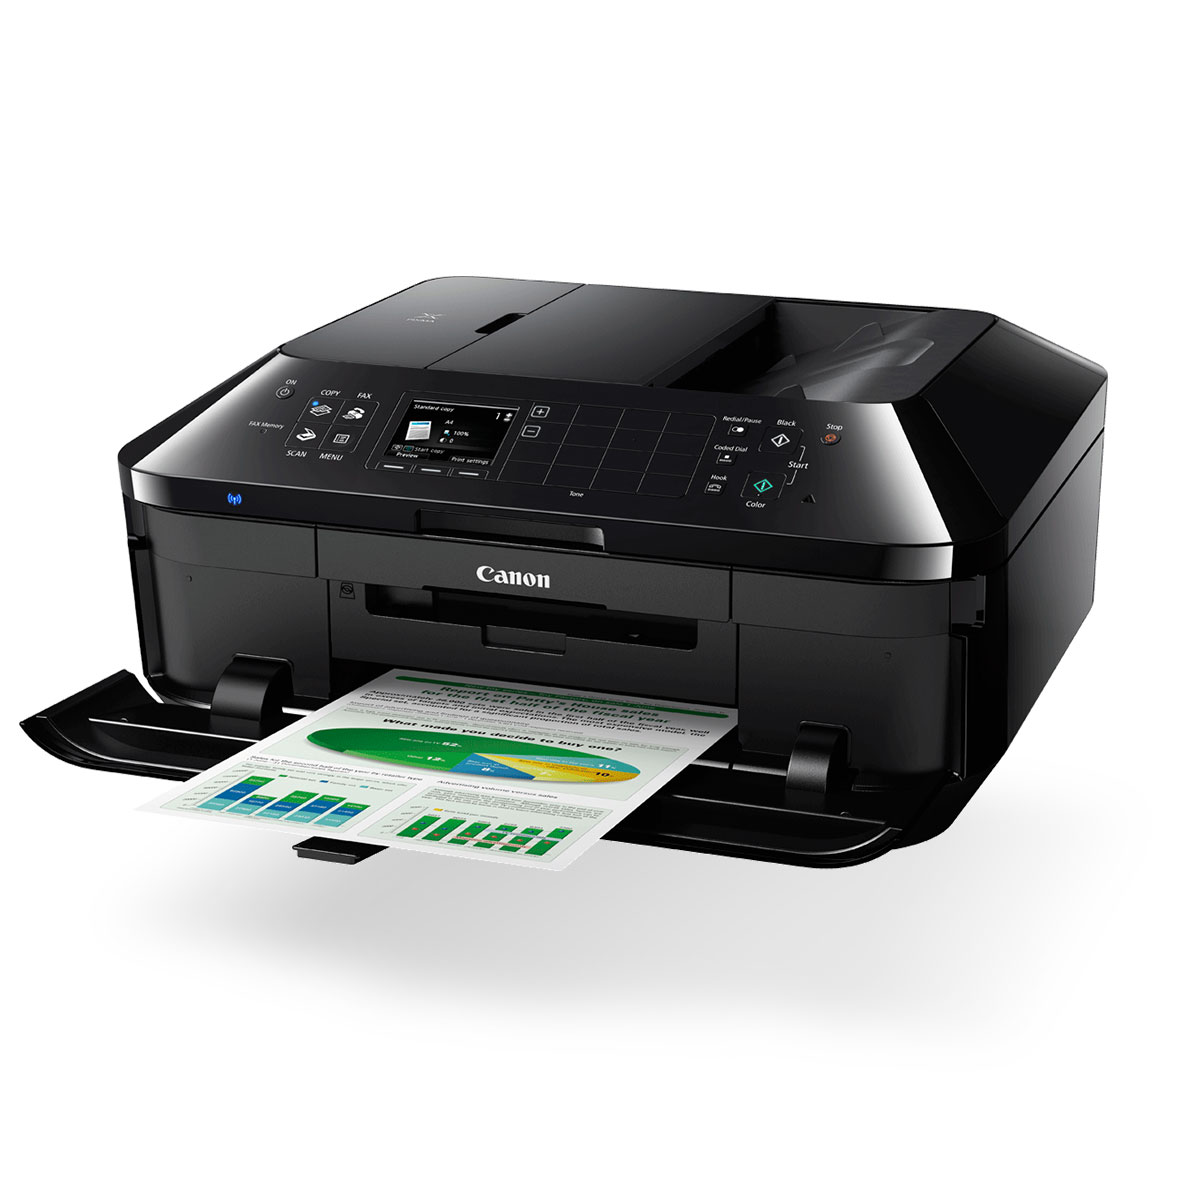 PIXMA MX926 Desktop Printer